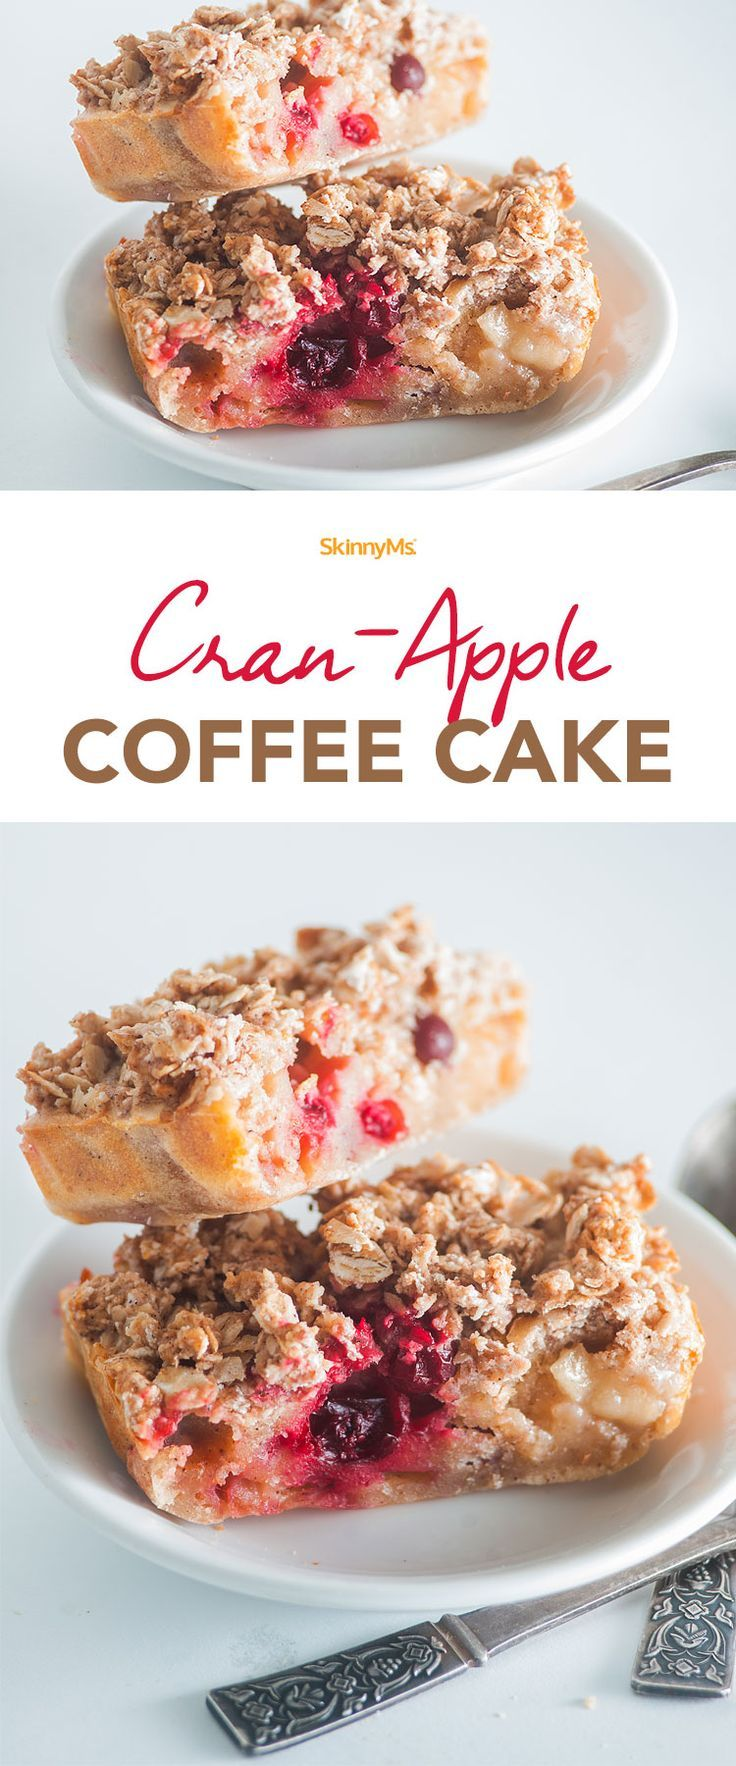 Cran-Apple Coffee Cake | Recipe (With images) | Coffee ...